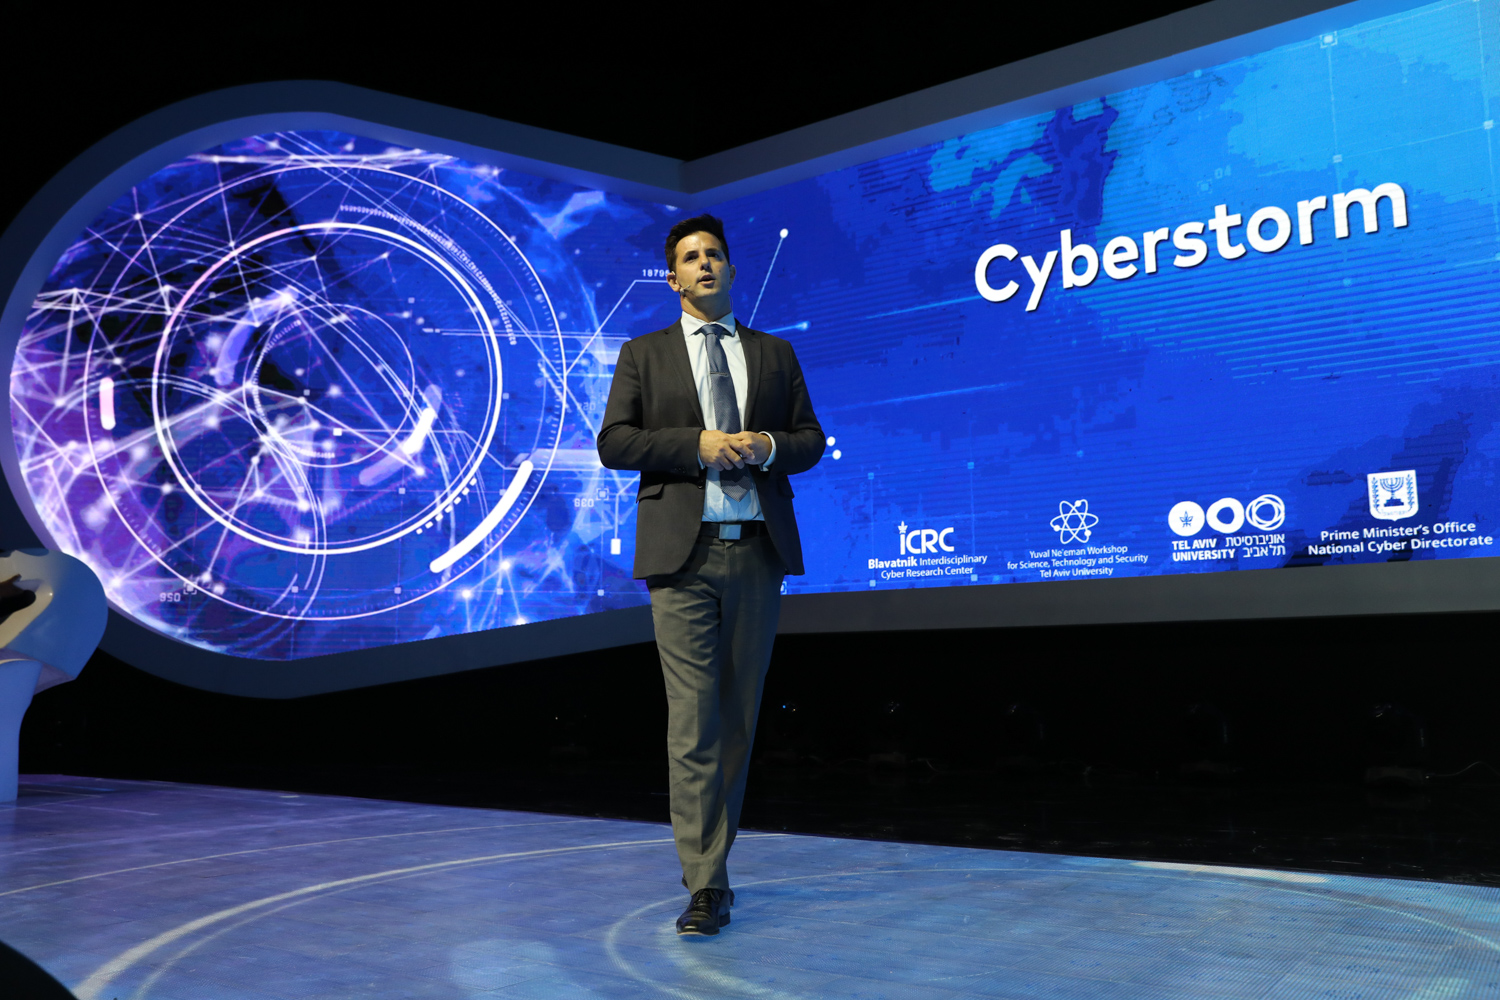 Showing image of Startup Cyberstorm